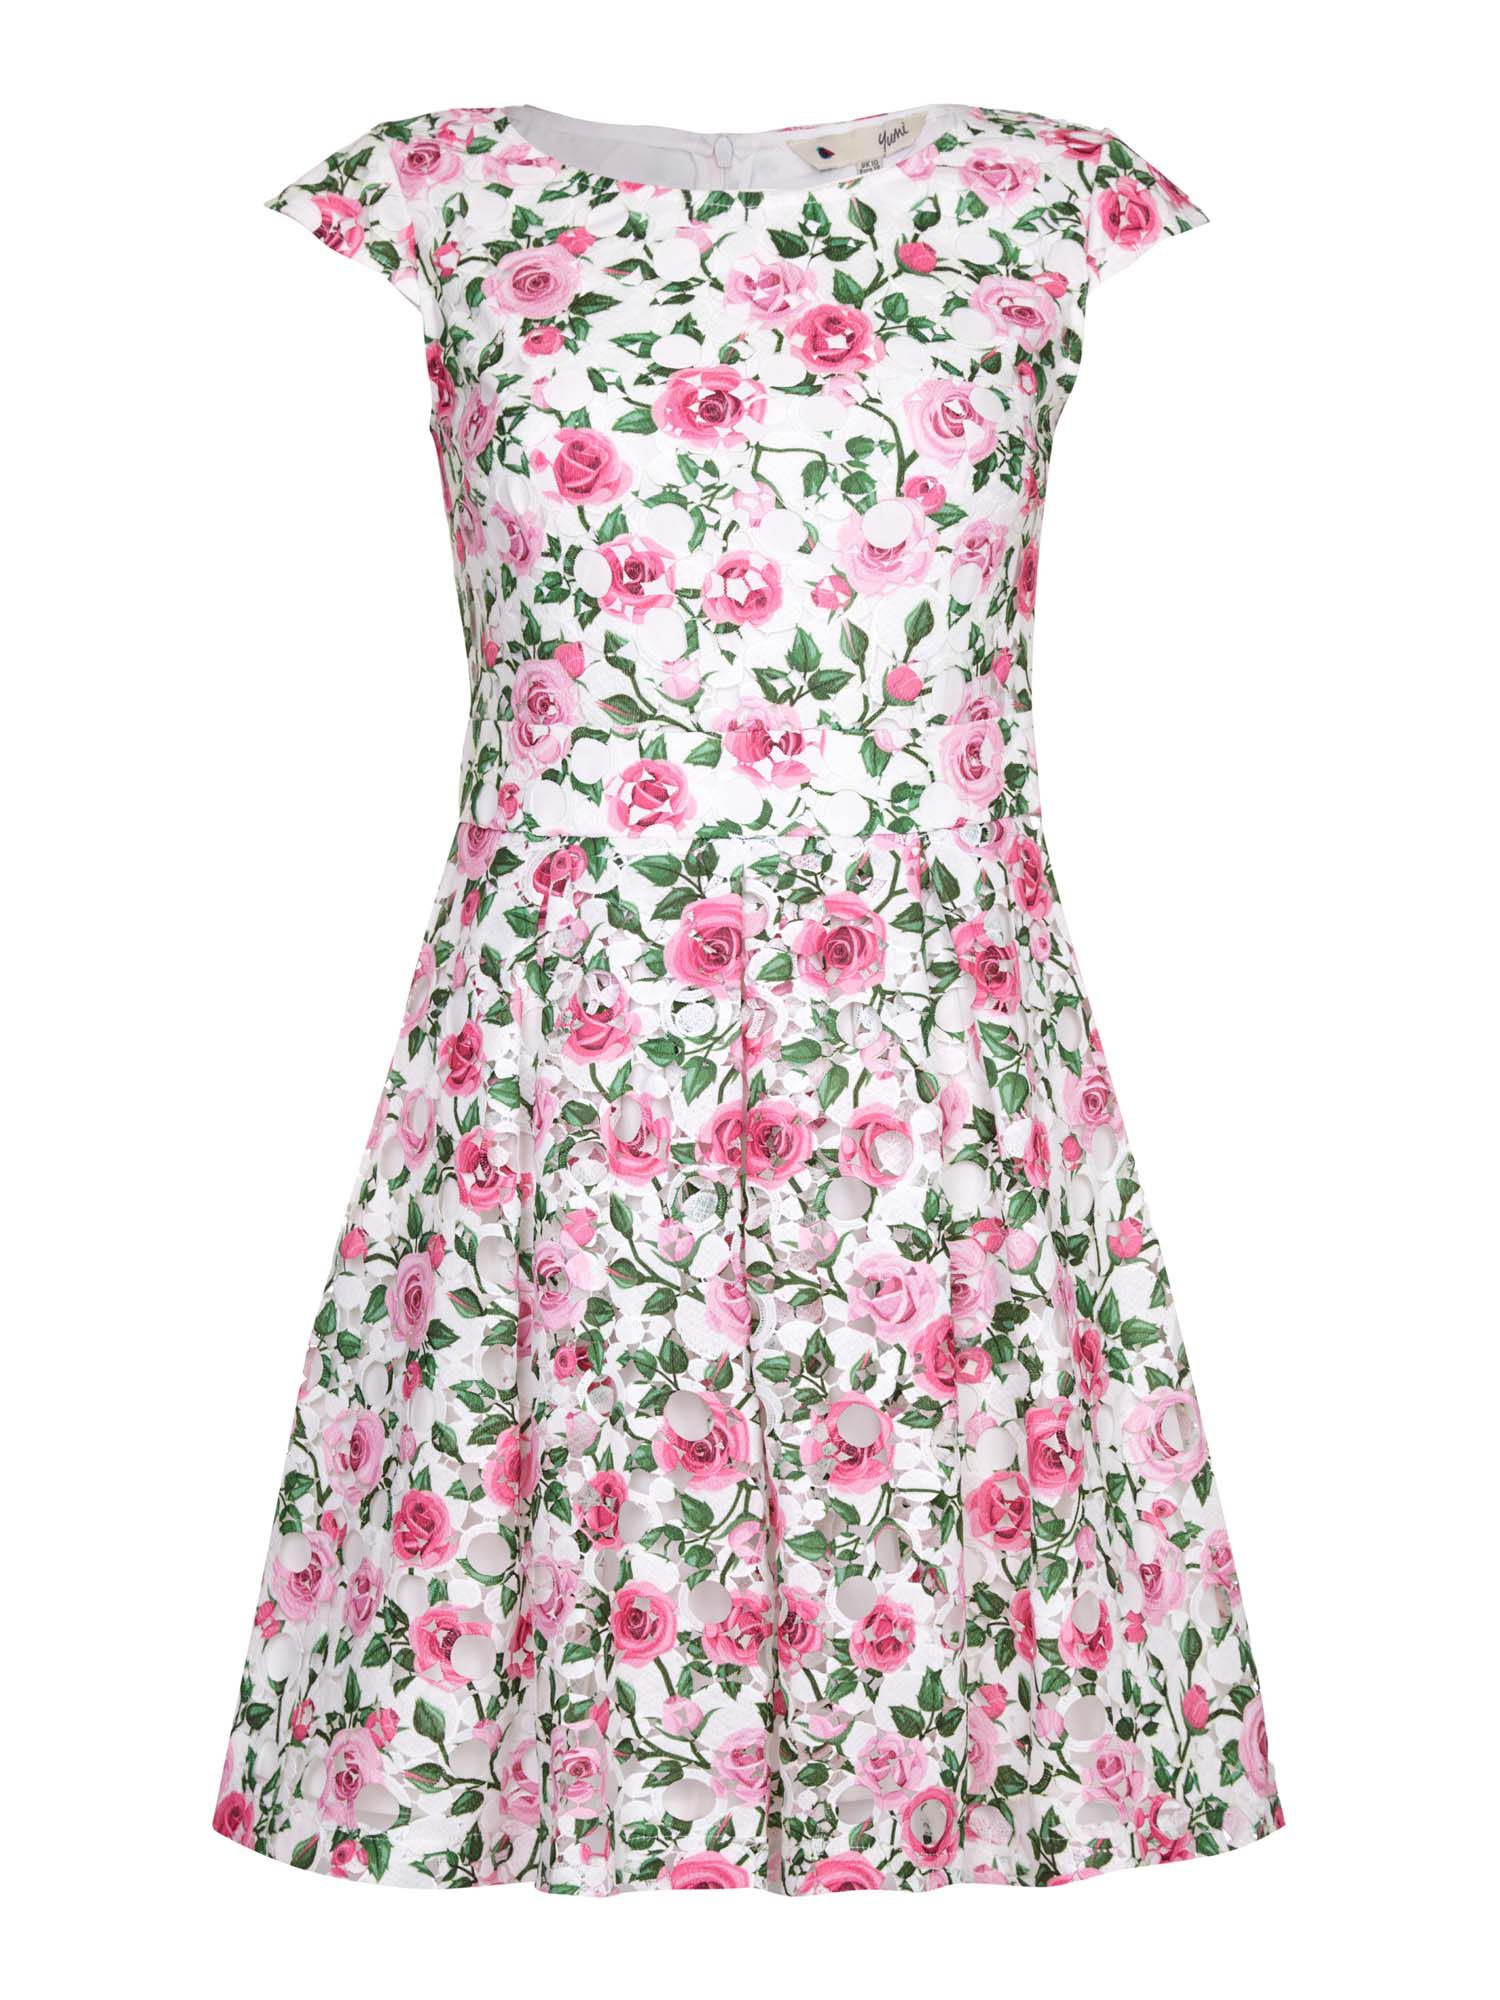 Yumi Rose Print Cap Sleeve Dress, Multi-Coloured